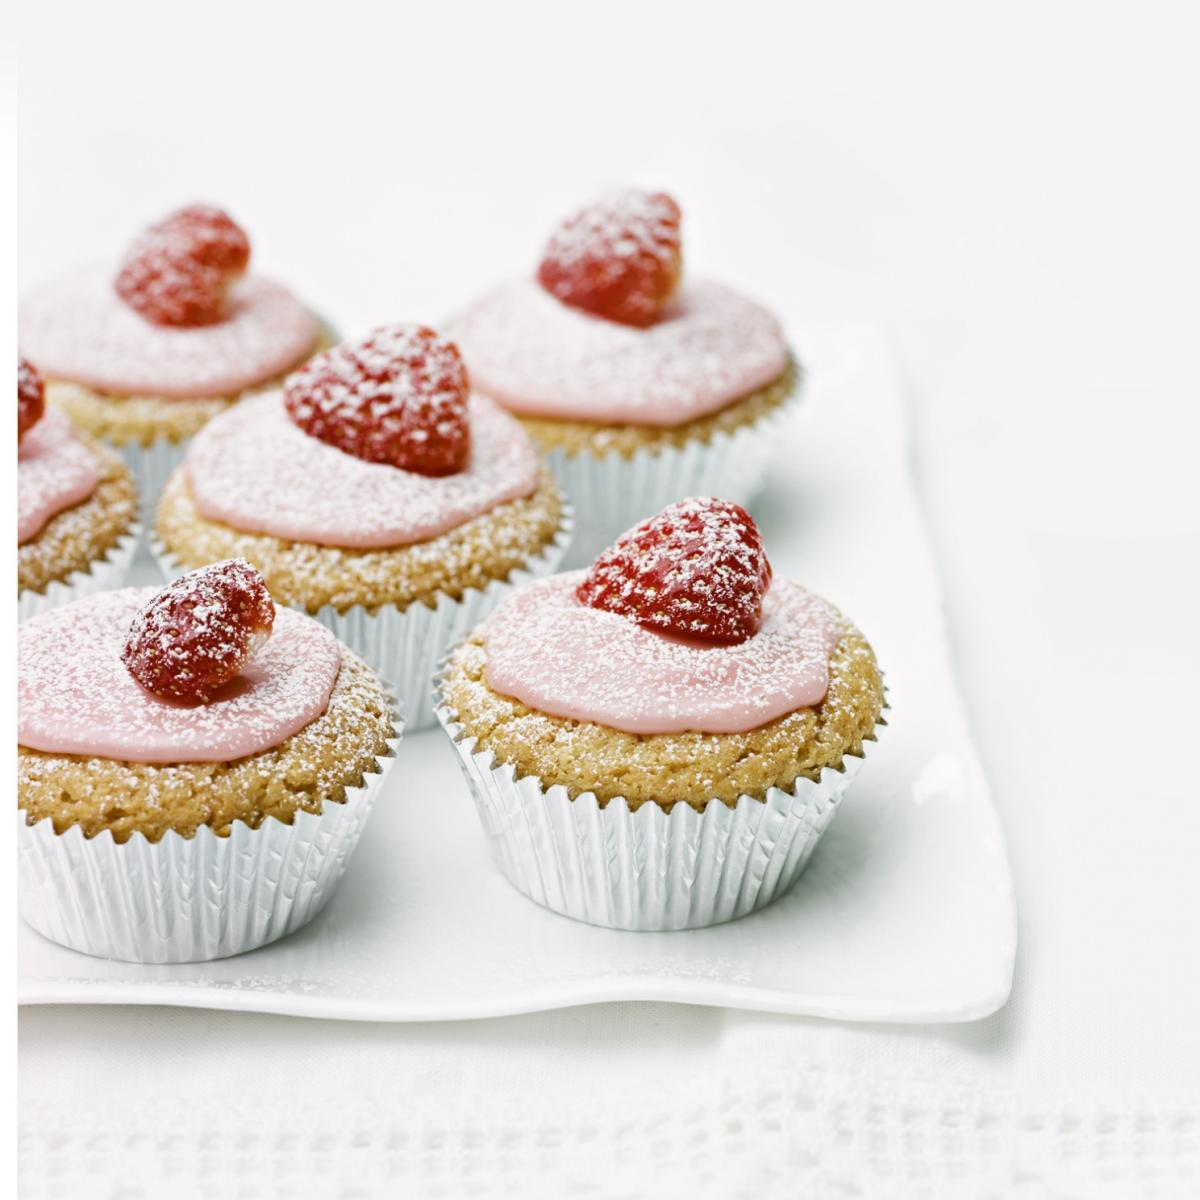 A picture of Delia's Iced Hidden Strawberry Cup Cakes recipe